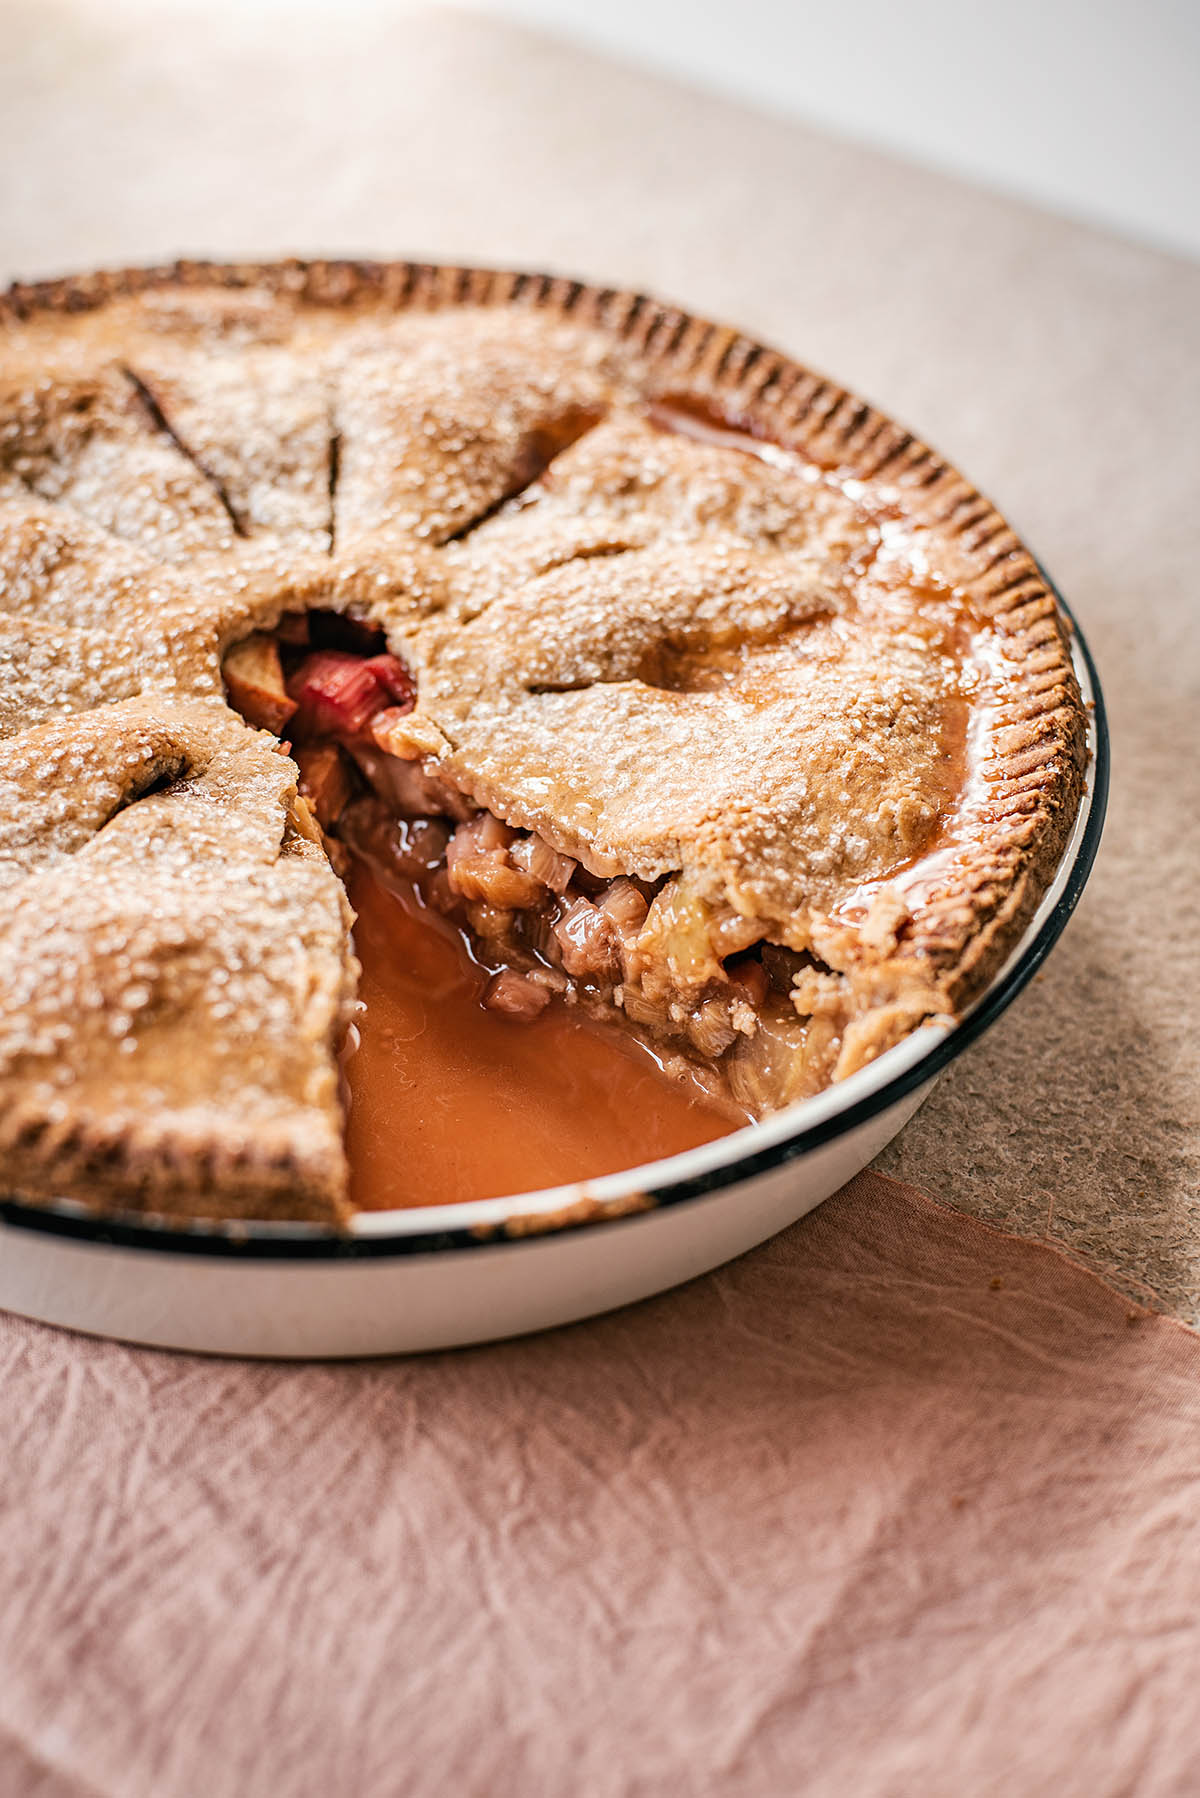 A fully baked aplpe rhubarb pie with one slice removed.